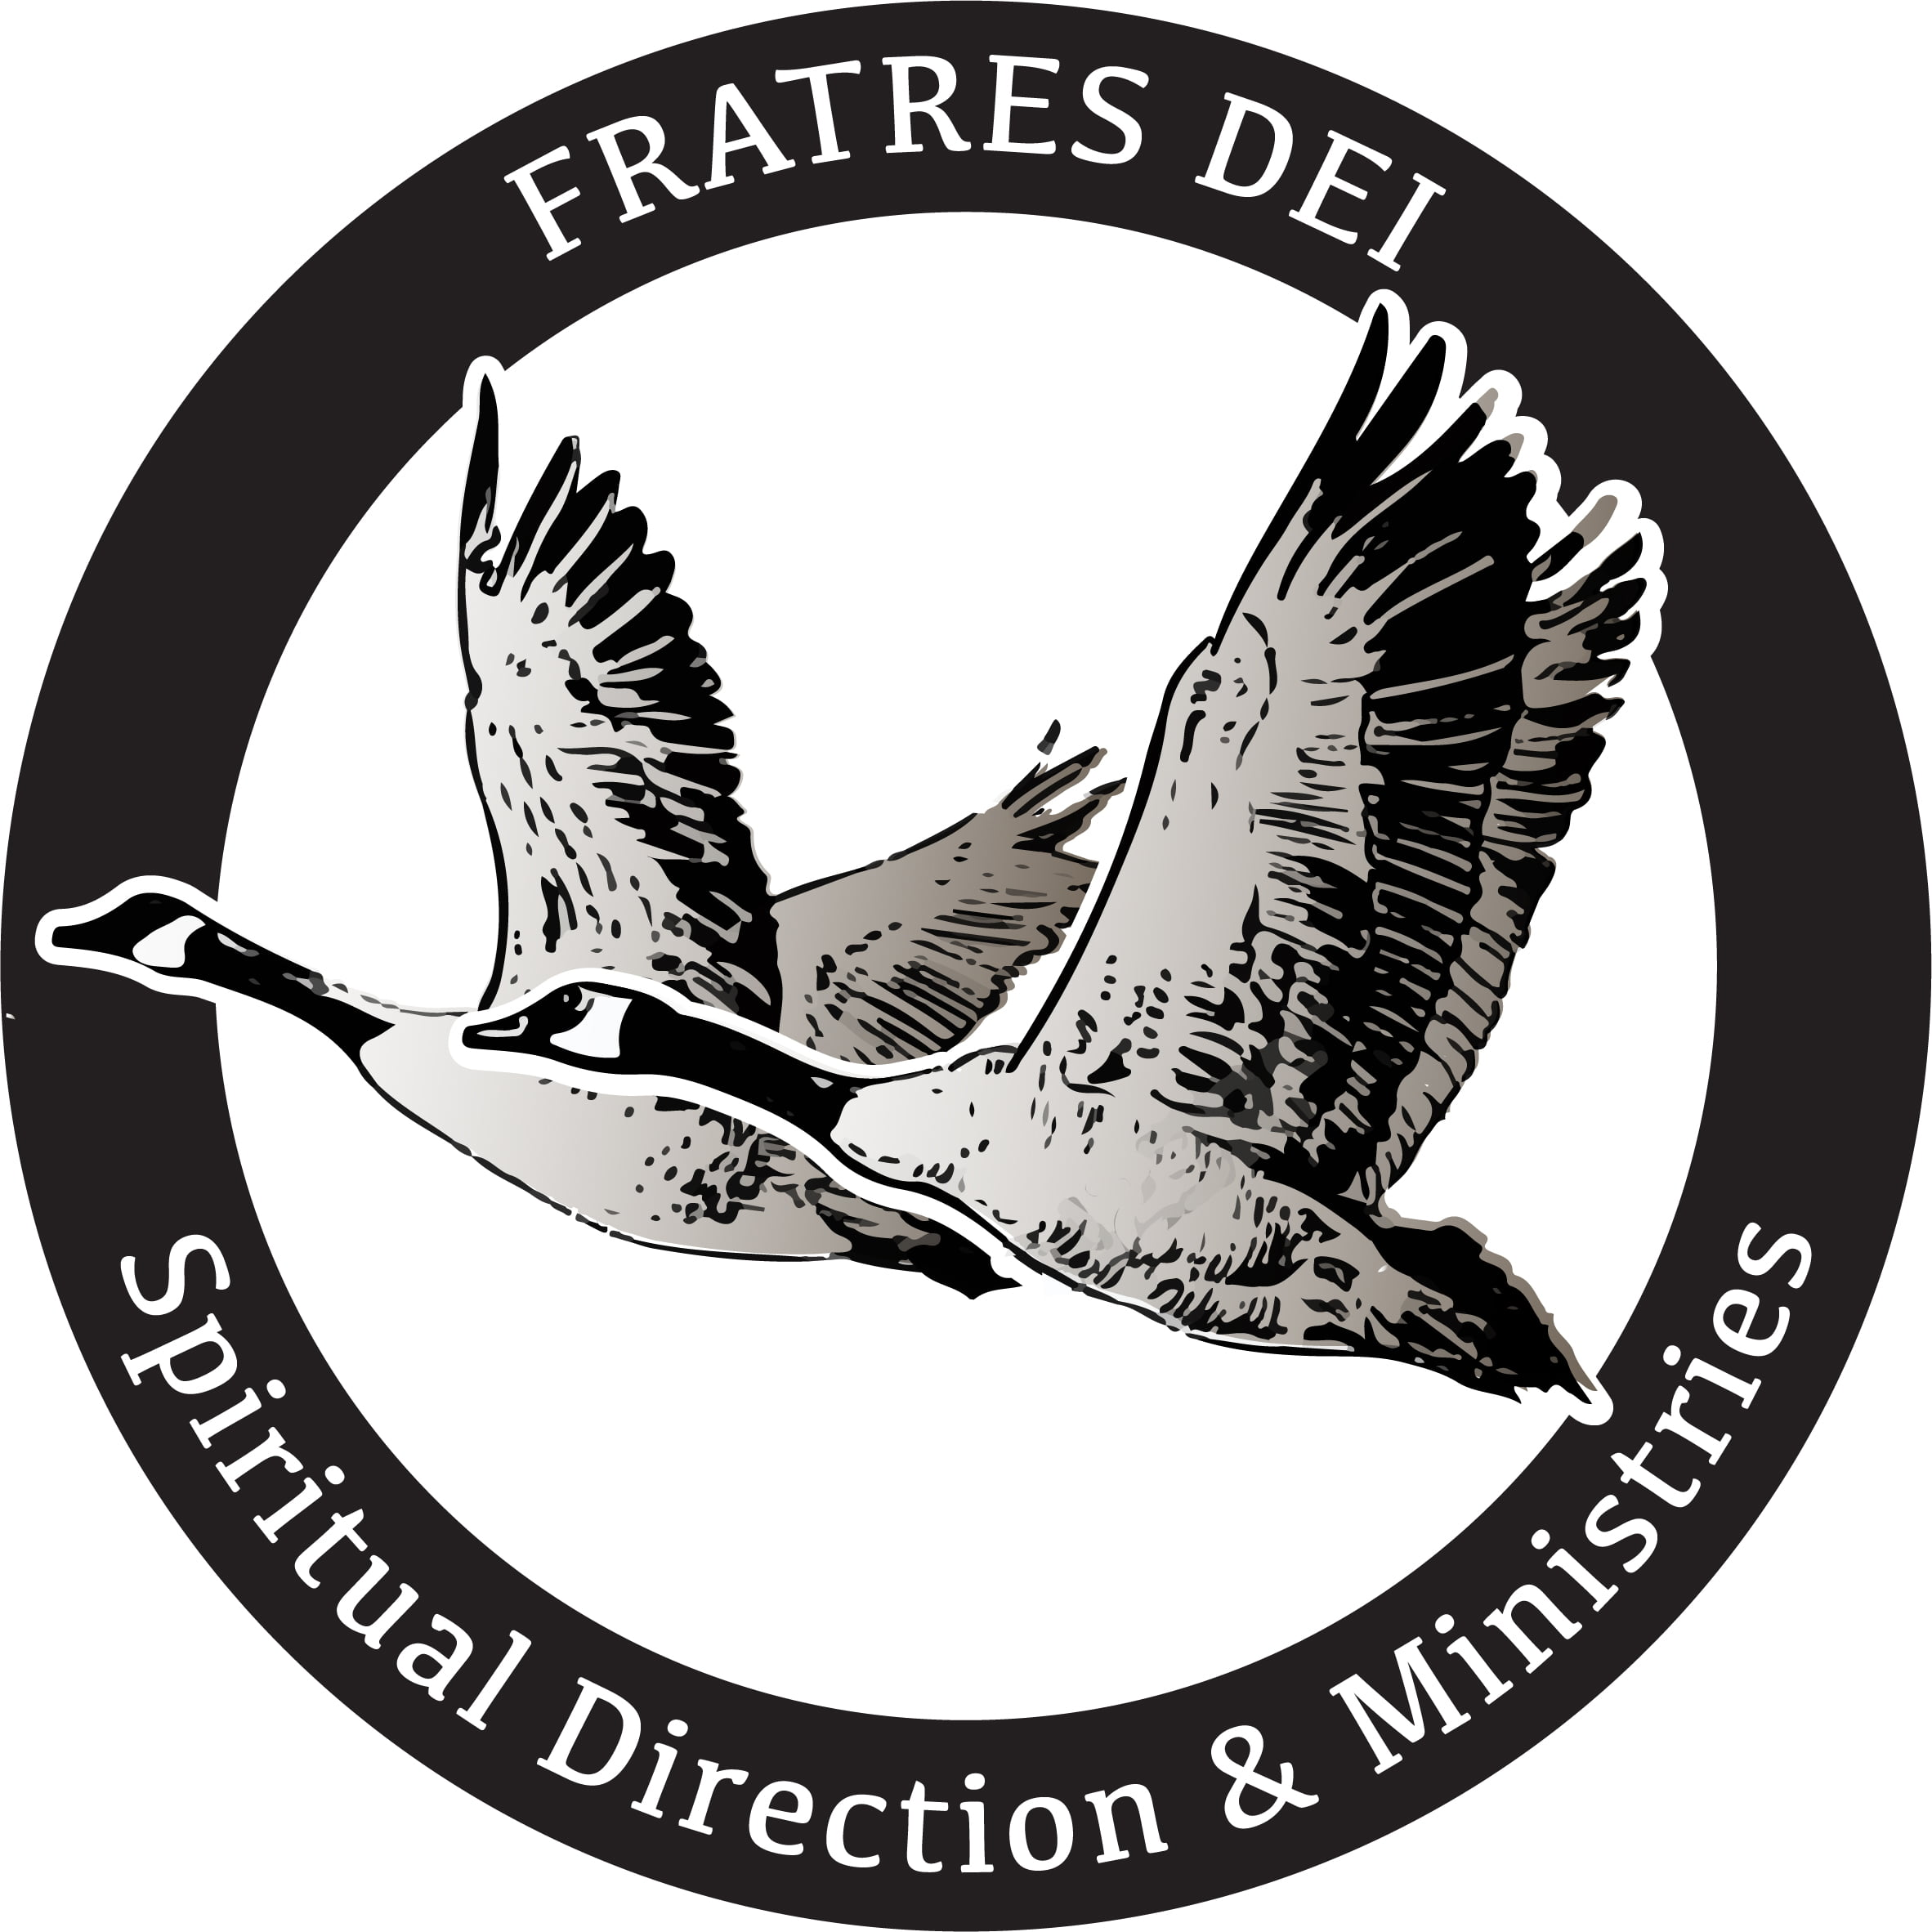 Spiritual Direction with Fratres Dei